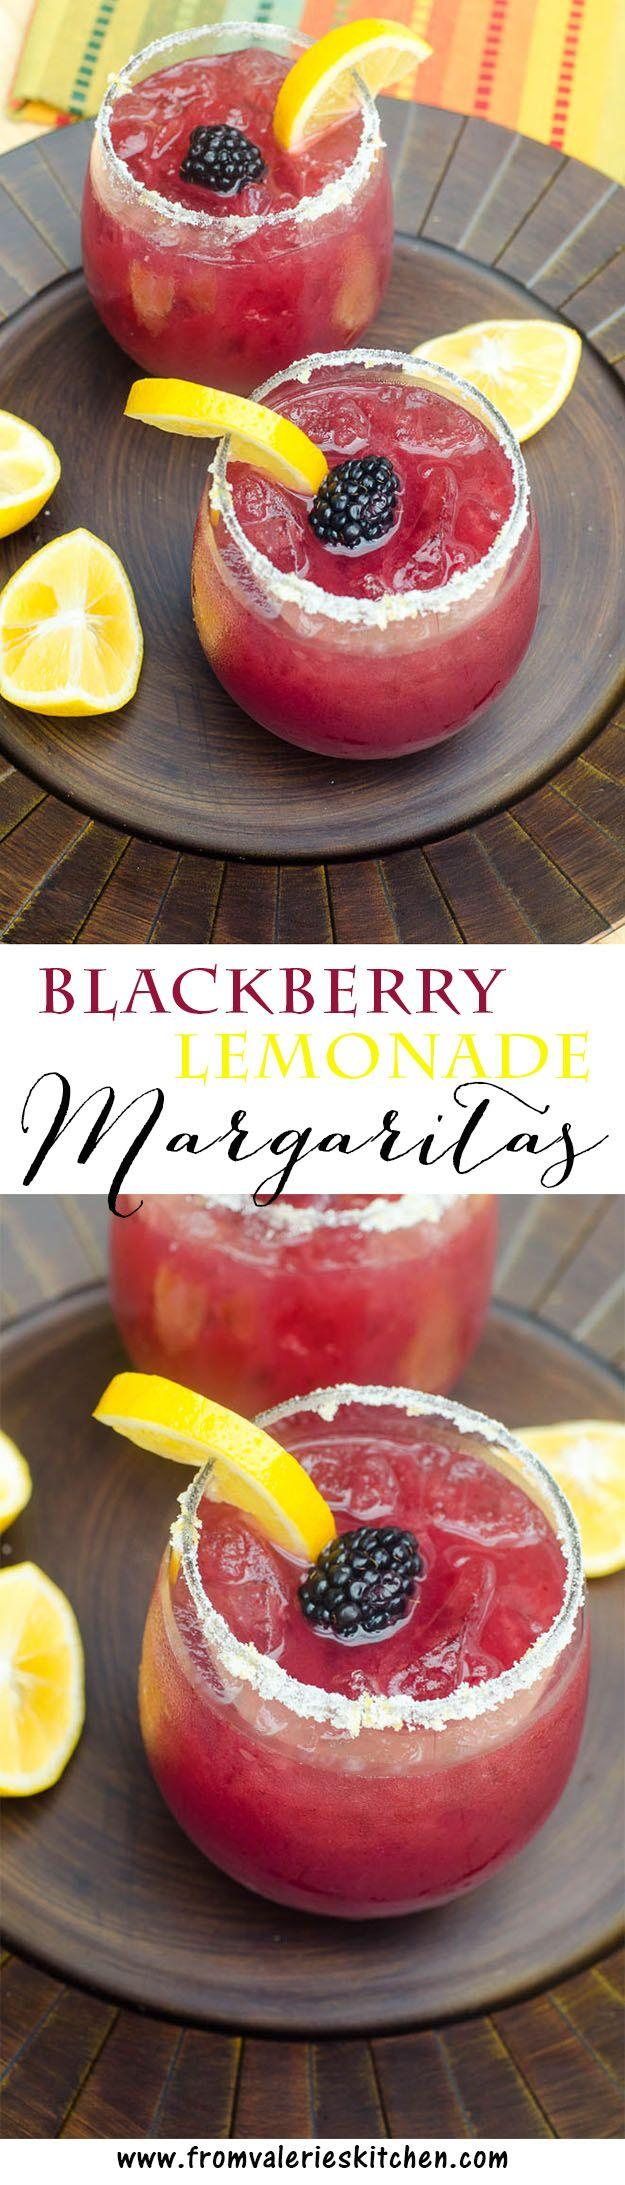 Wedding - Blackberry Lemonade Margaritas